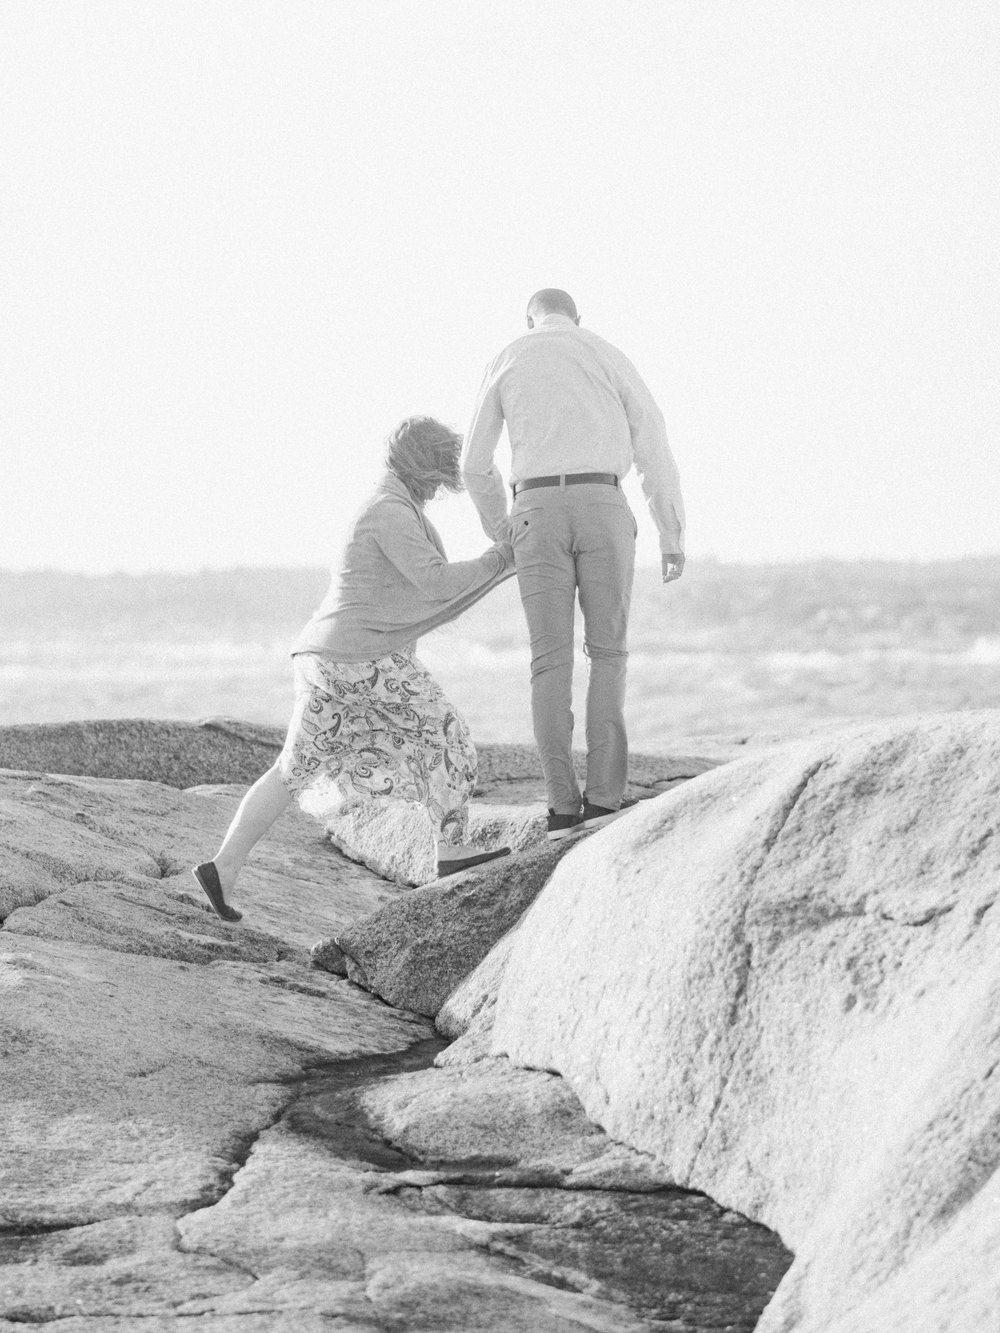 Jacqueline Anne Photography - Alex and Andrew Engagement at Peggy's Cove - Halifax-11.jpg